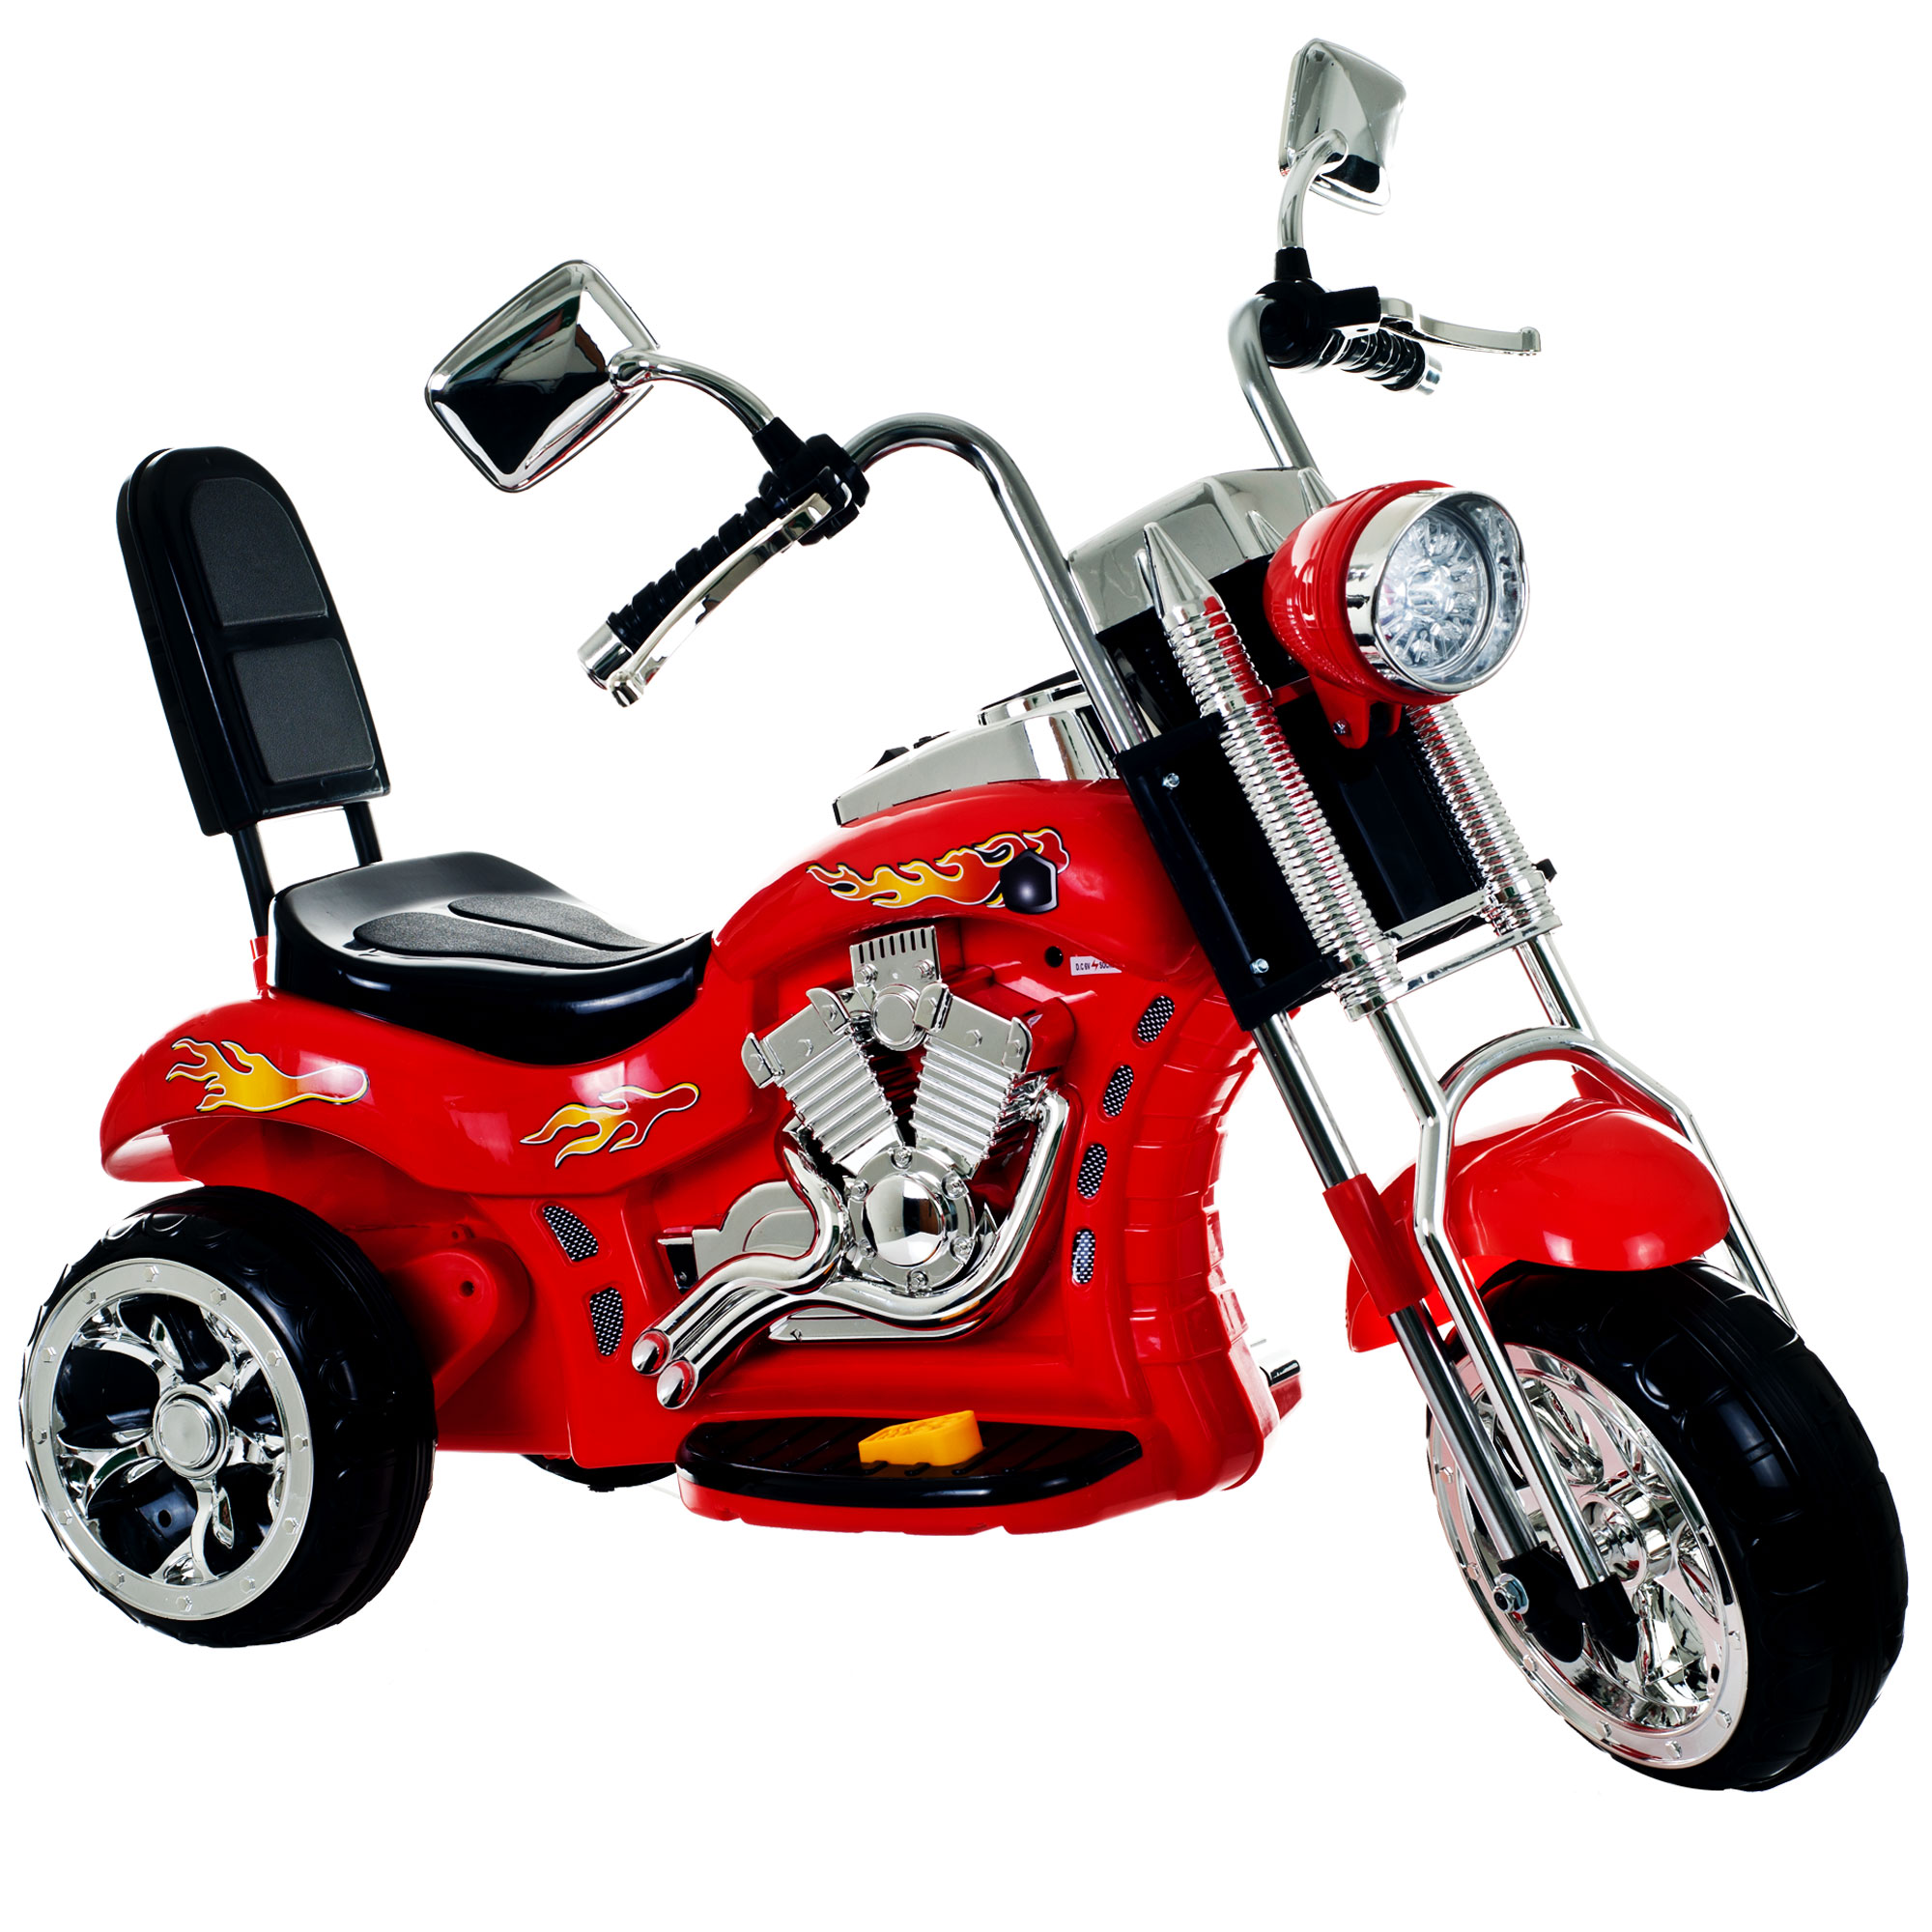 Ride on Toy, 3 Wheel Trike Chopper Motorcycle for Kids by Hey! Play! - Battery Powered Ride on Toys for Boys and Girls, 2 - 4 Year Old - Red